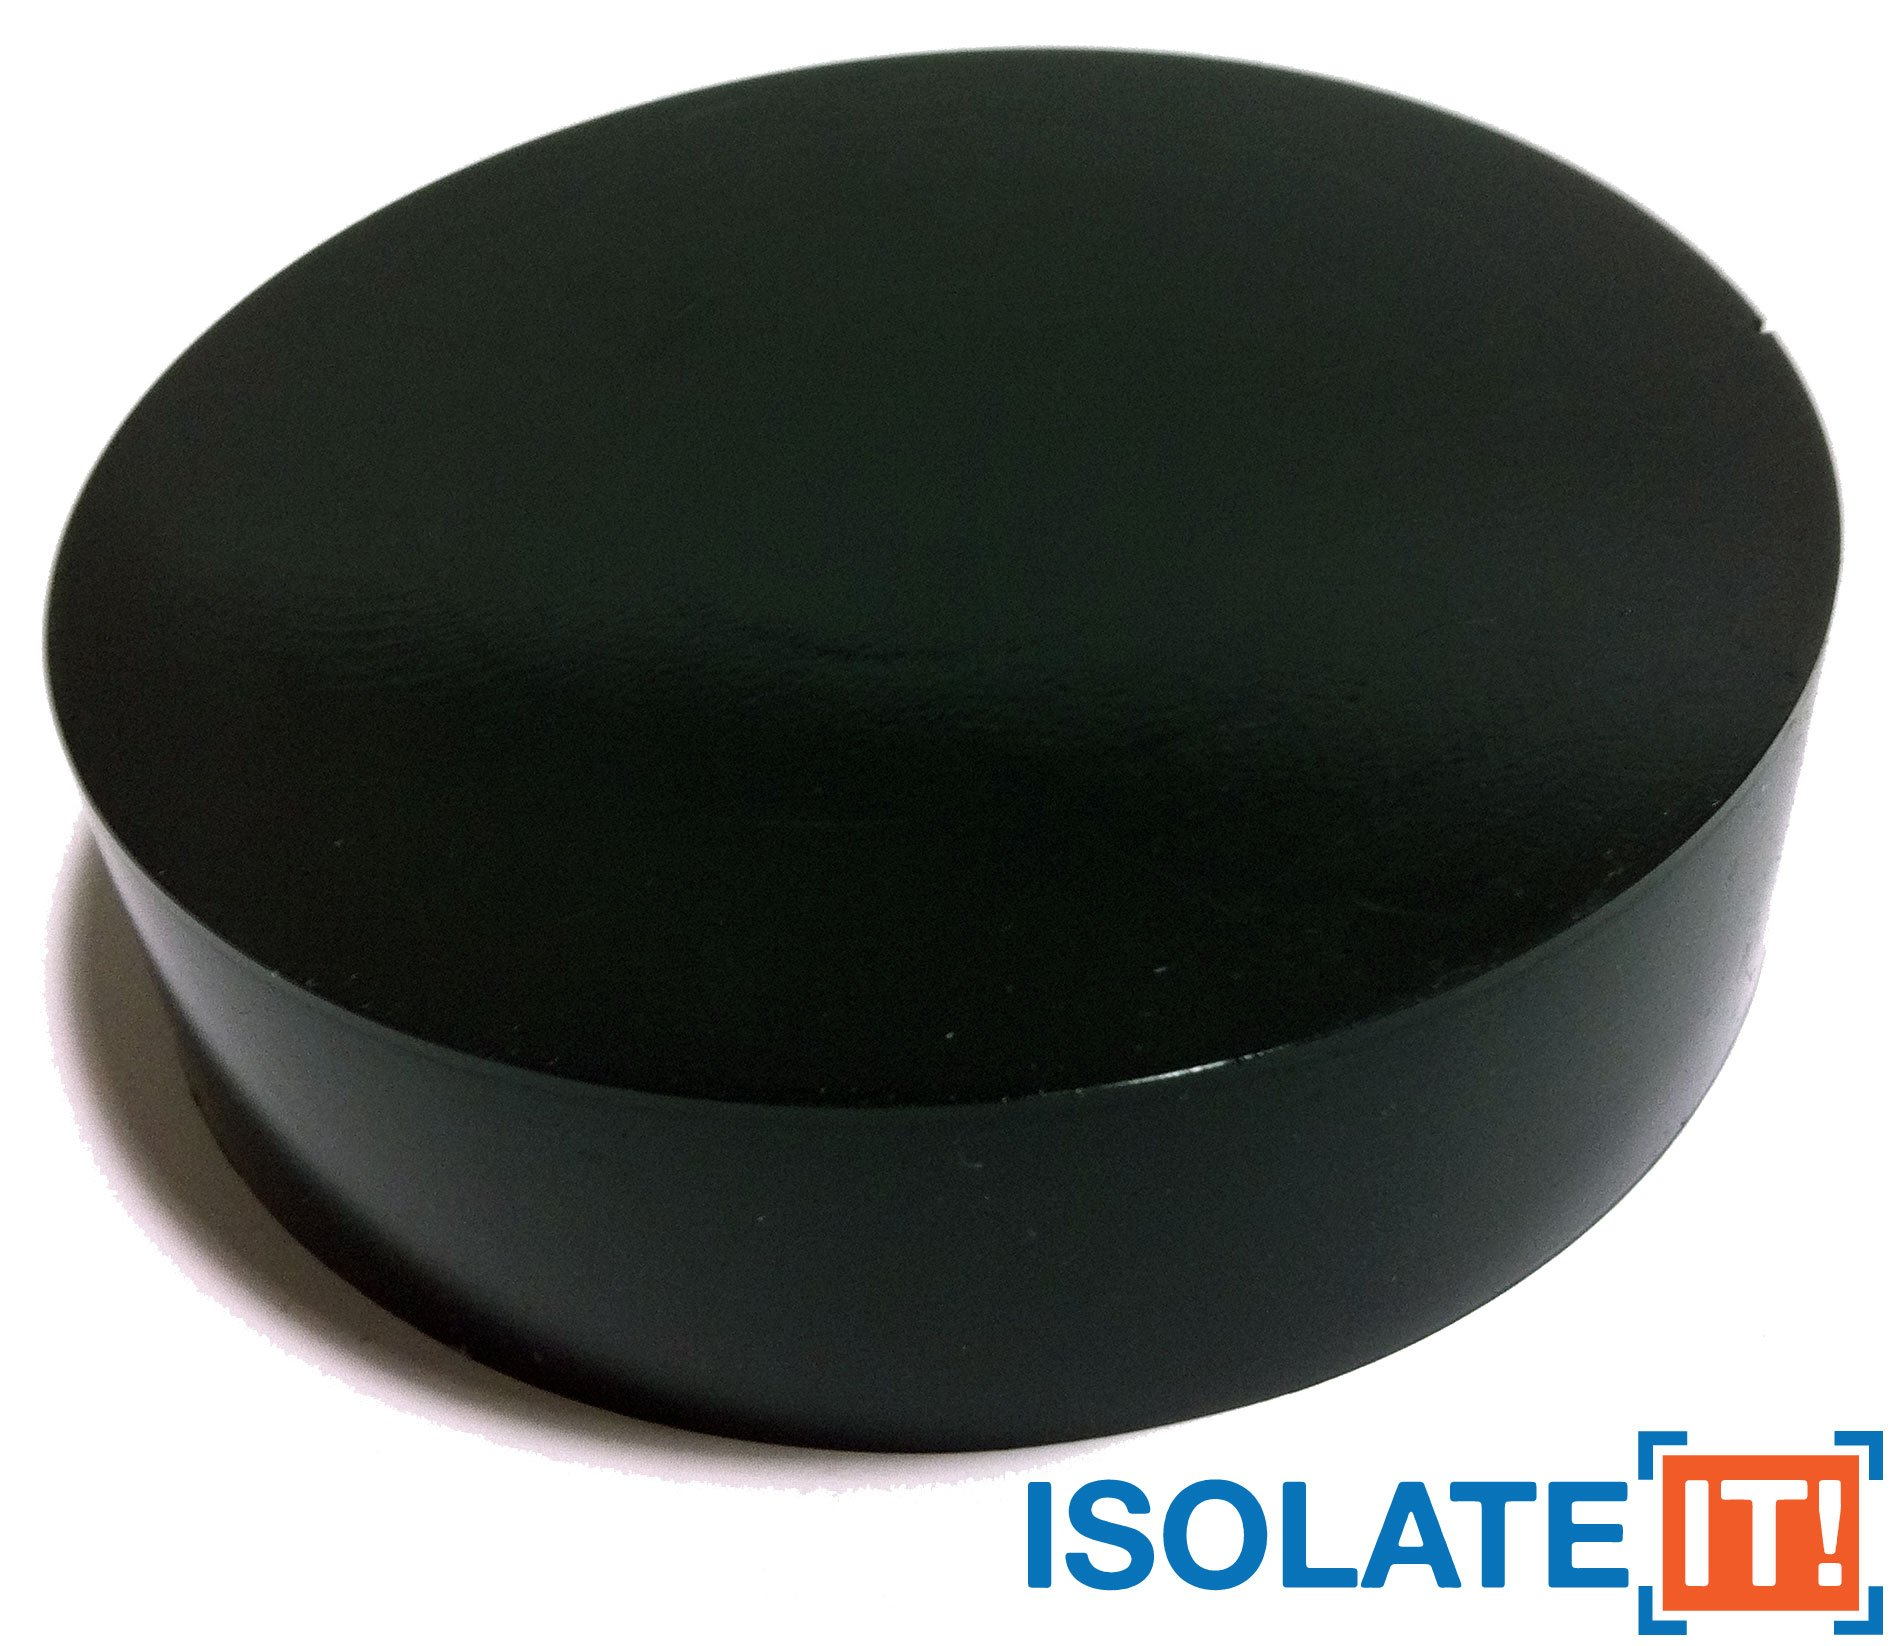 Isolate It: Sorbothane Vibration Isolation Circular Pad 50 Duro (1'' Thick 4'' Dia.) - 4 Pack